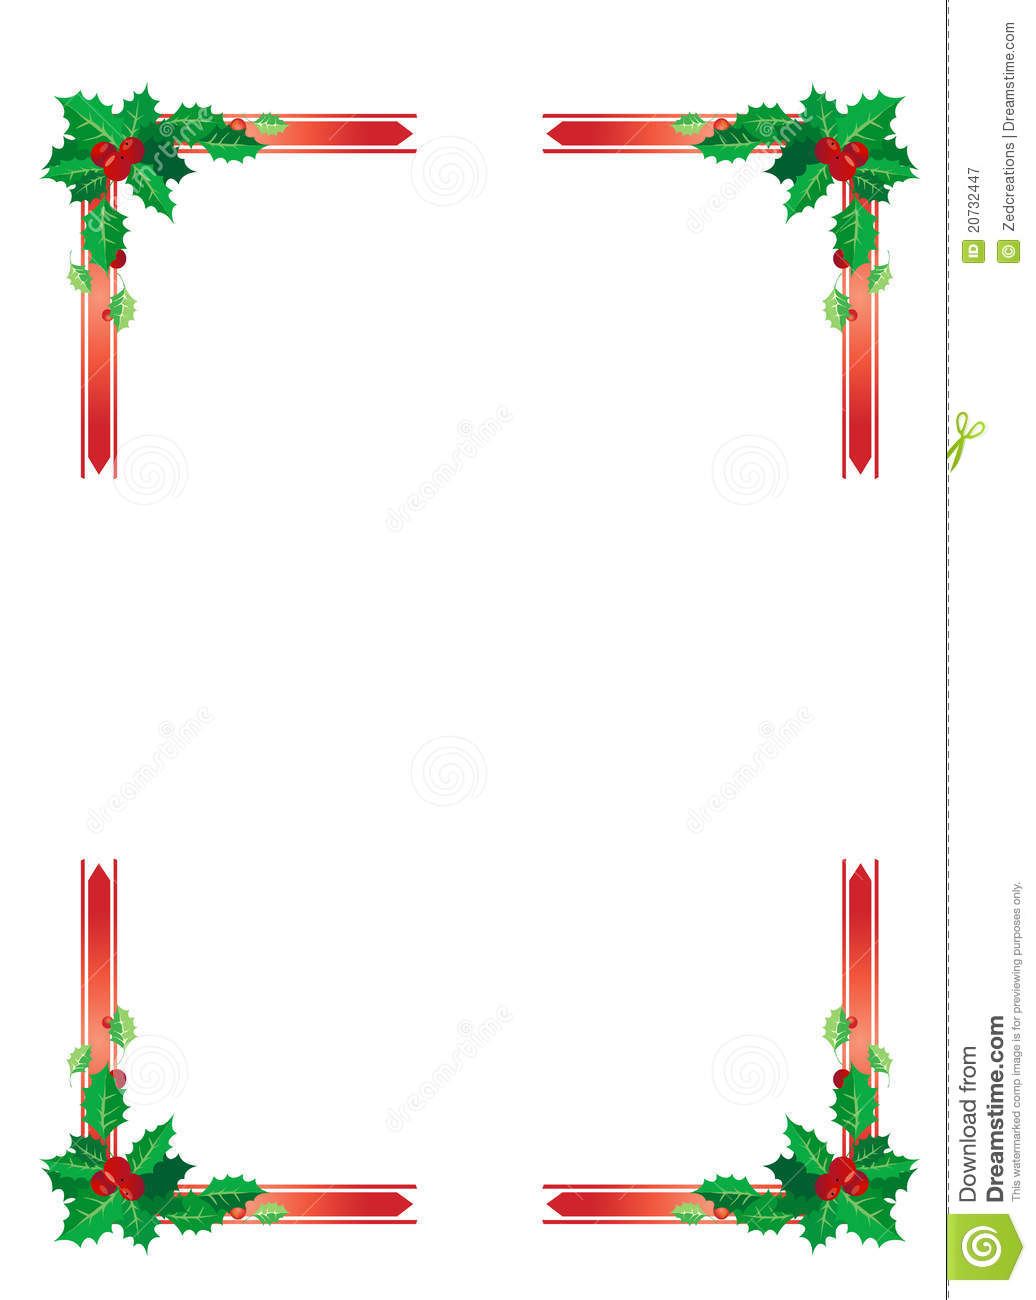 Christmas Border Royalty Free Stock Photography - Image: 20732447